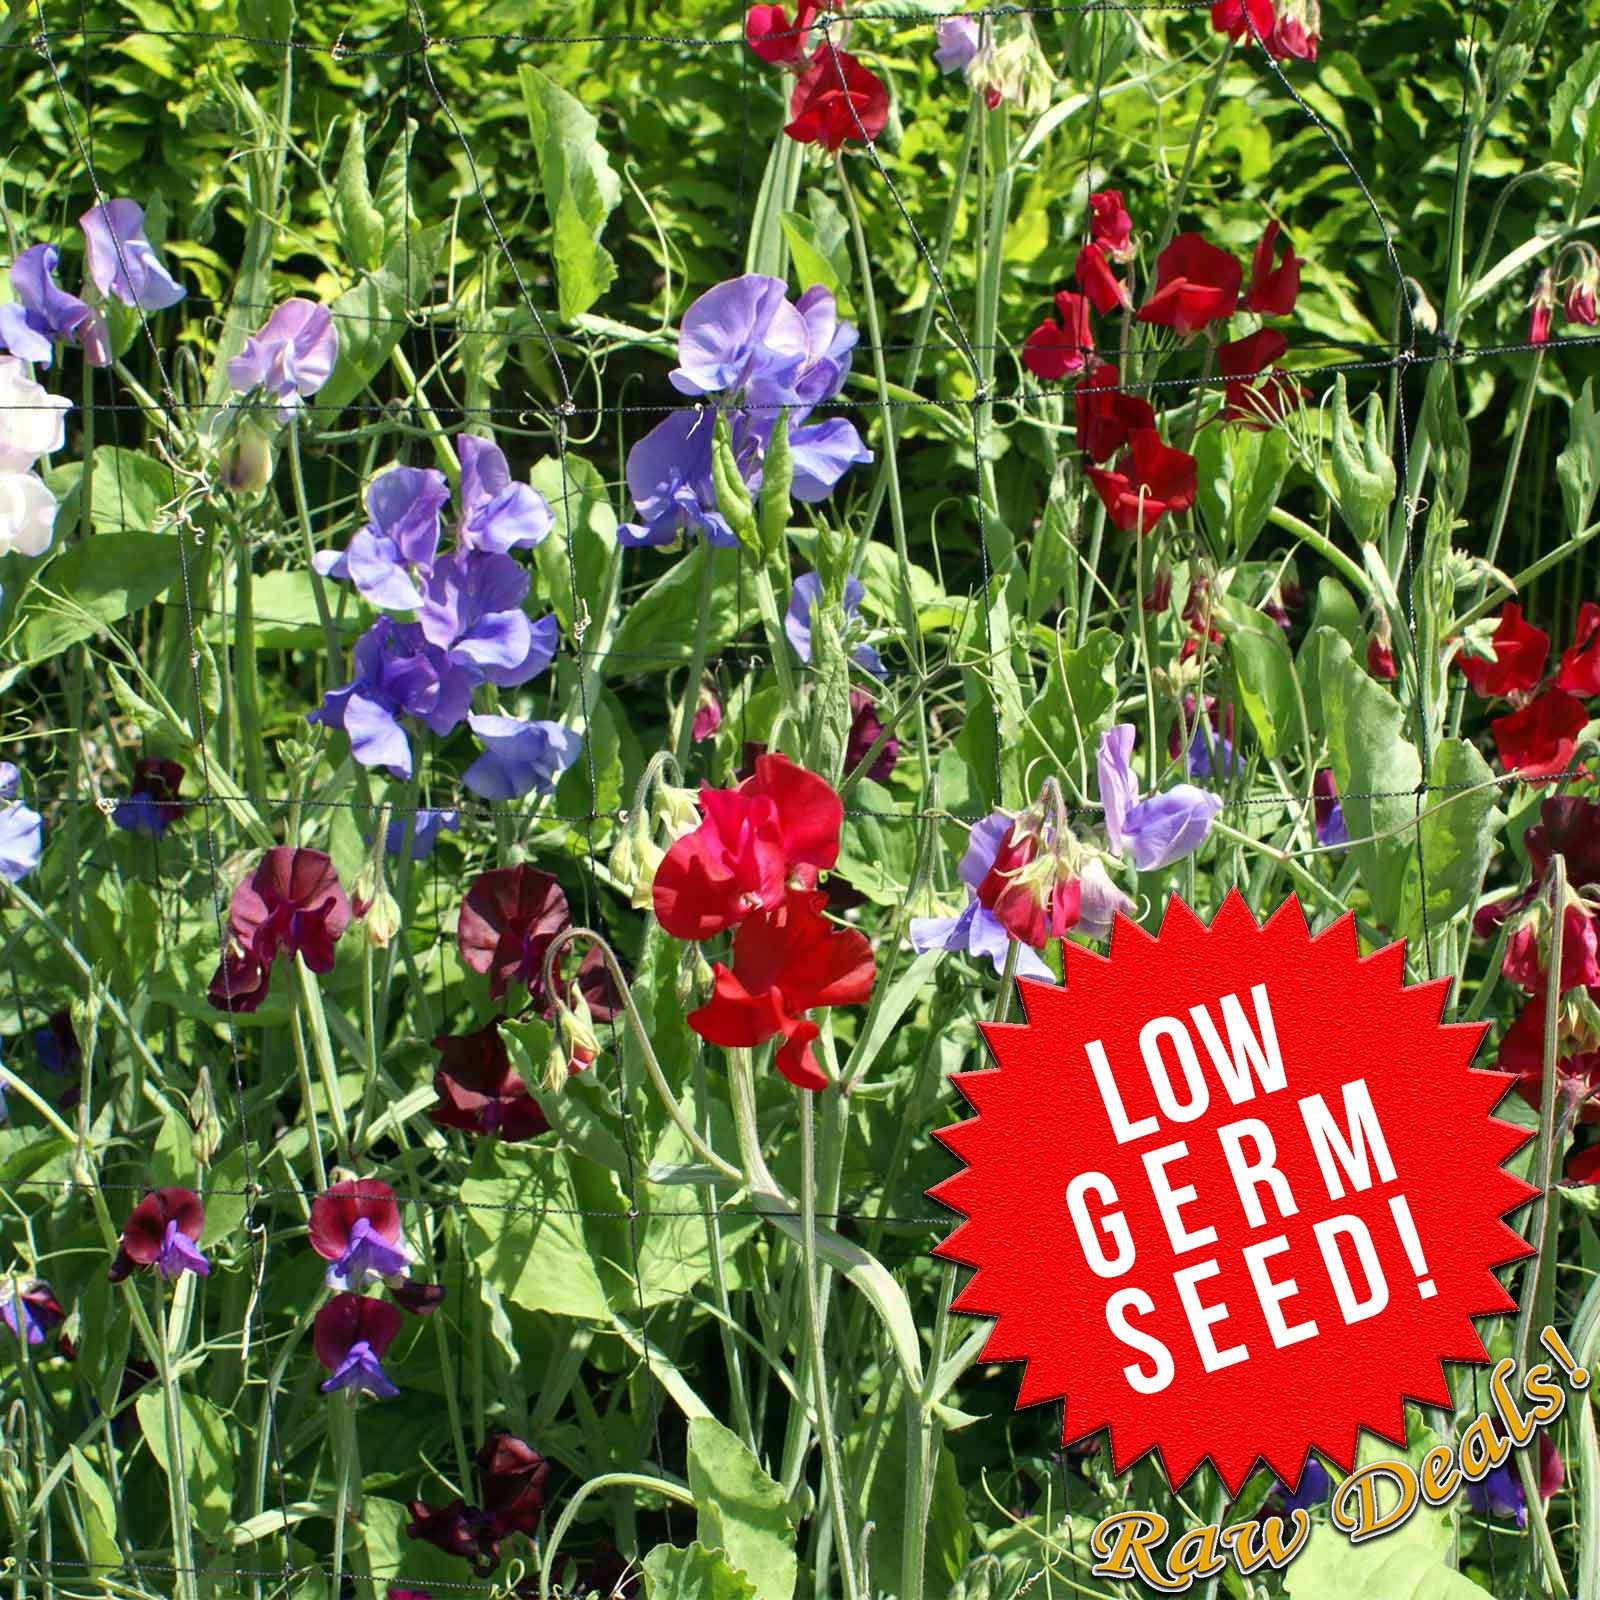 Low Germ - Sweet Pea - Royal Family Mixture Flower seeds, sweet pea seeds, Royal Family Mixture